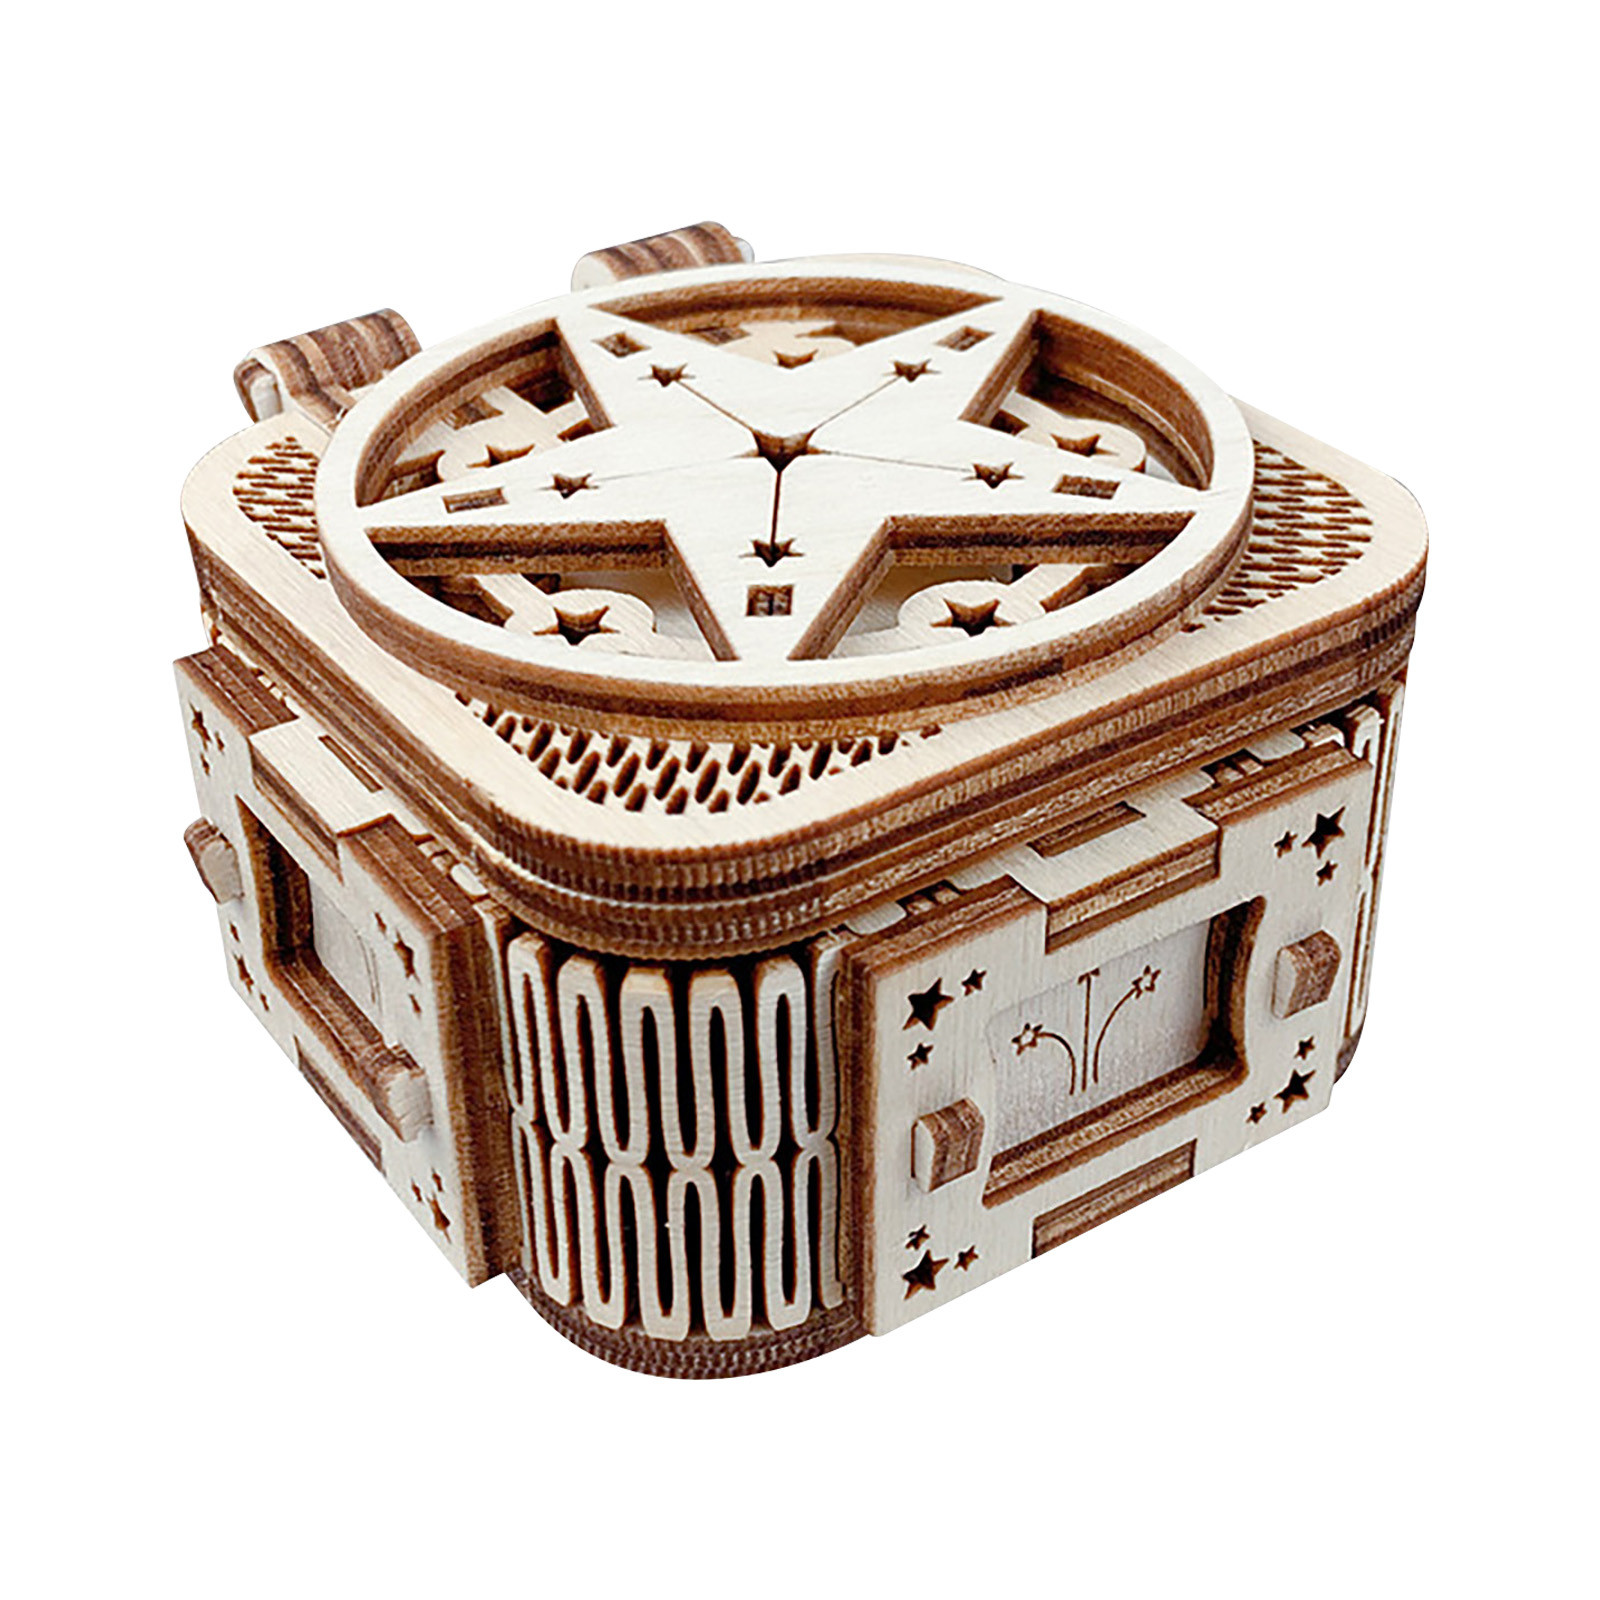 2020 DIY Manual Splicing Model Of 3D Children's Wooden Mechanical Transmission Puzzle Wooden Splicing Toys F Fast Ship 14